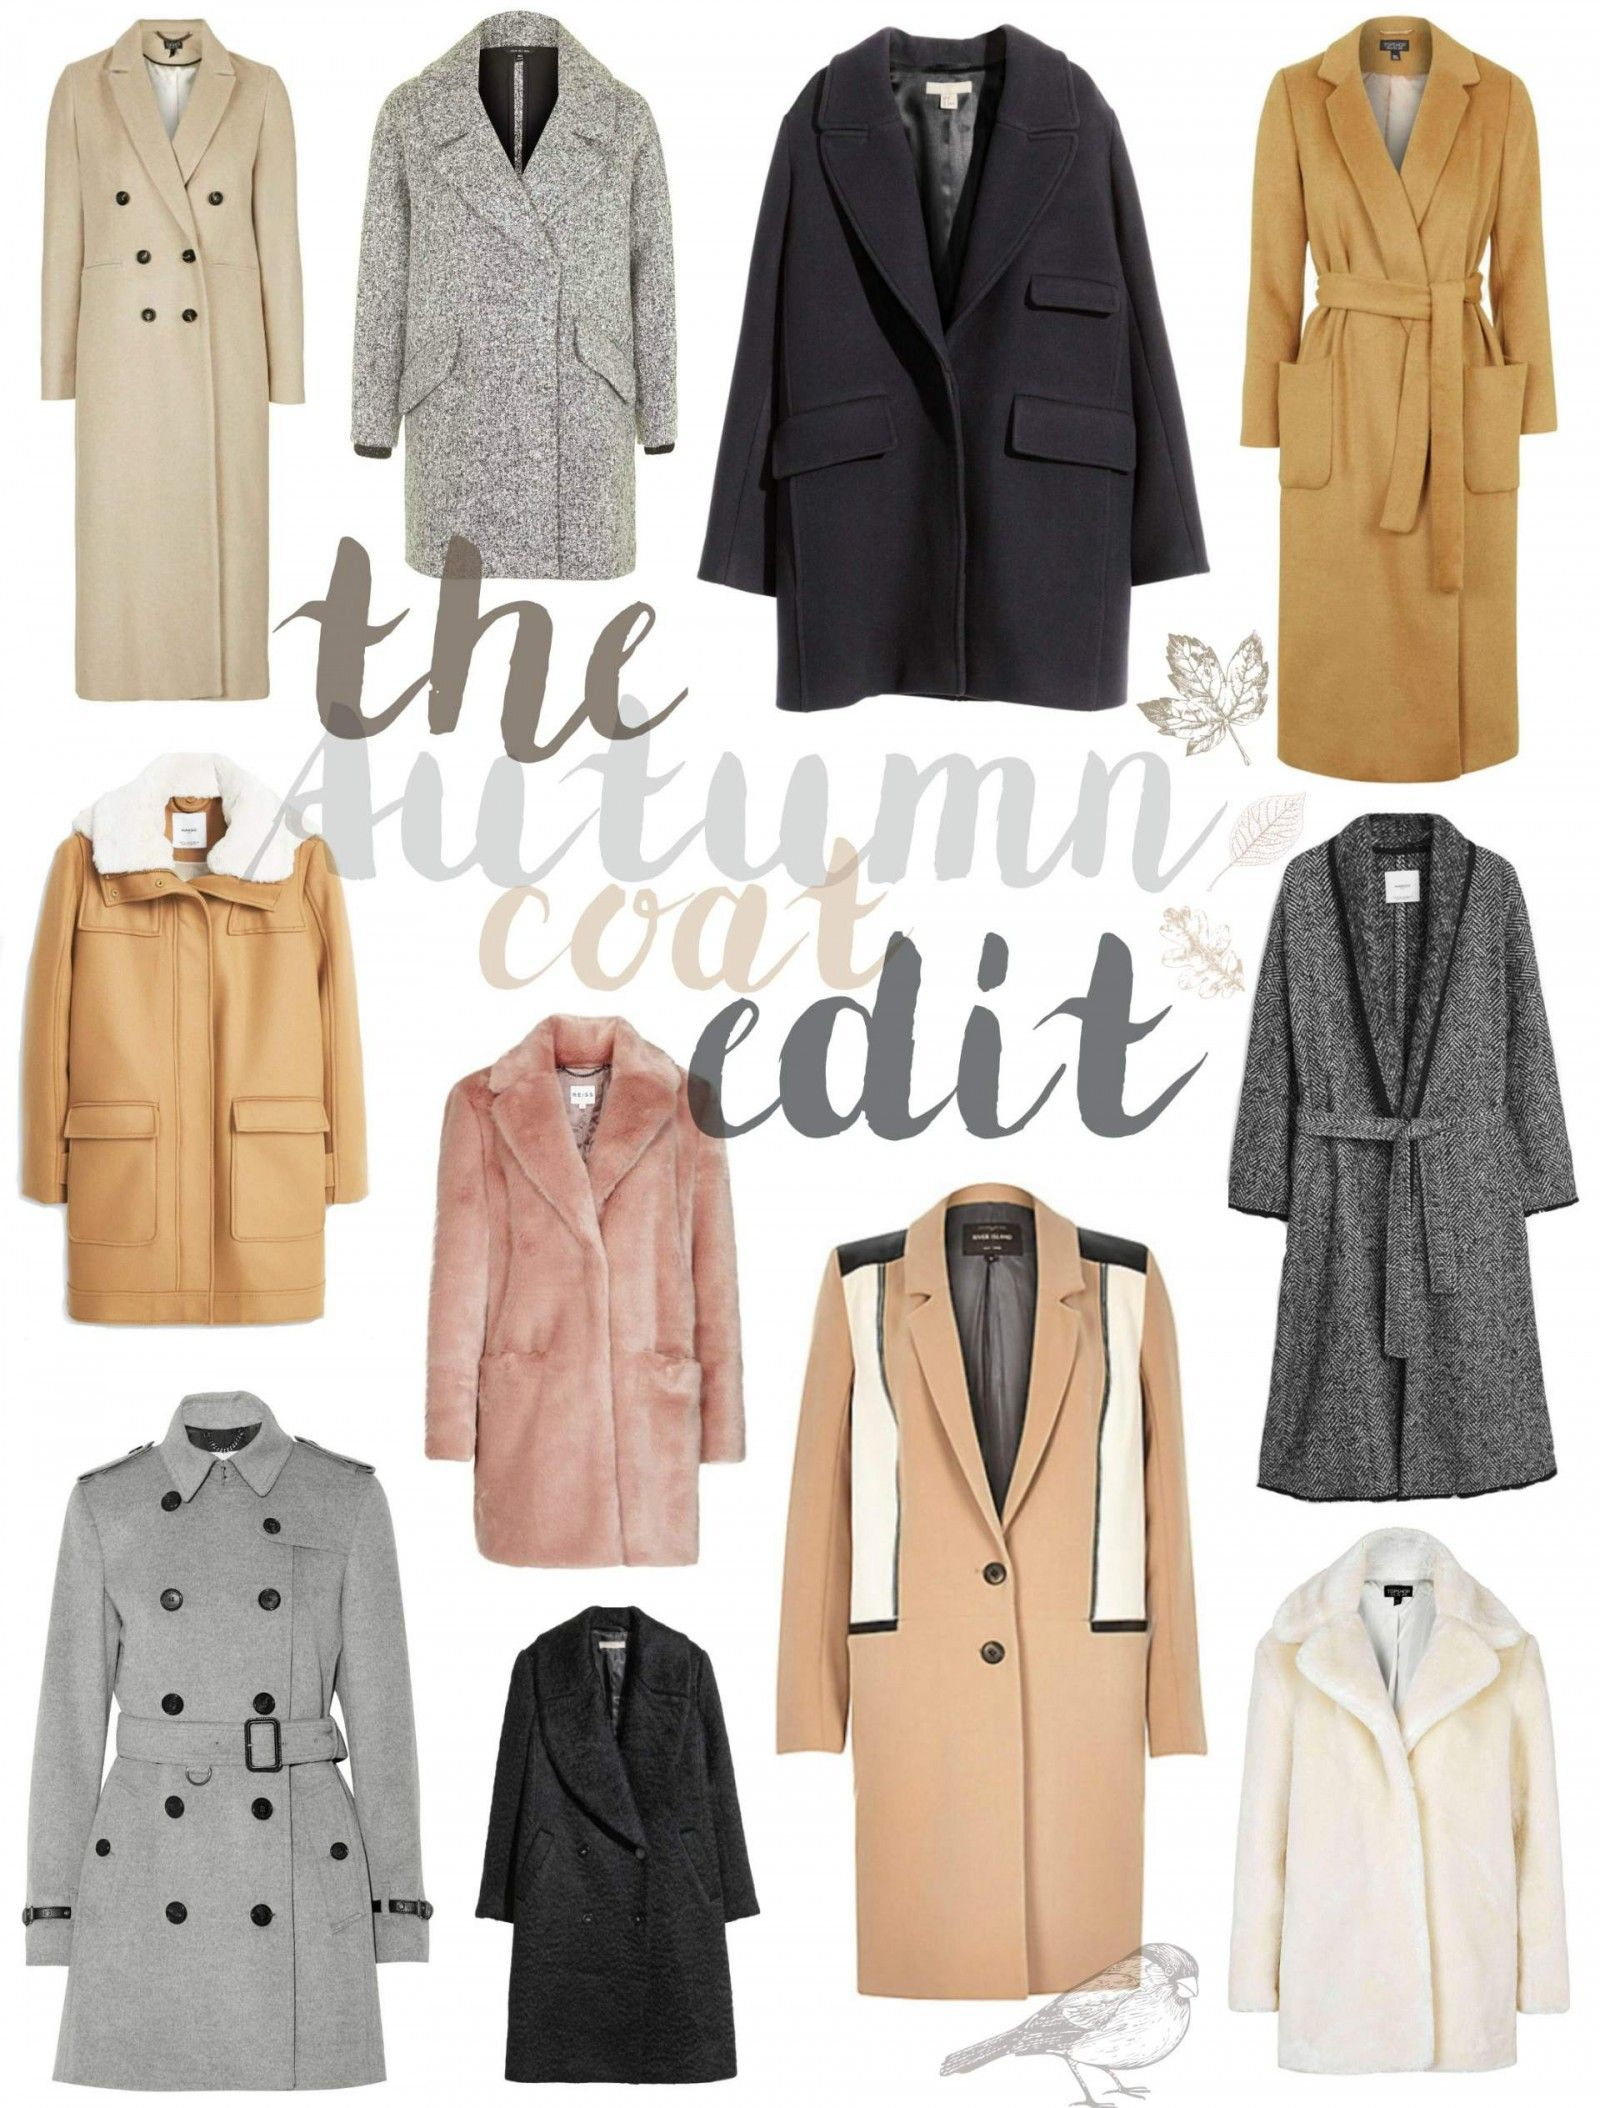 The Autumn High Street Coat Edit - The Lovecats Inc